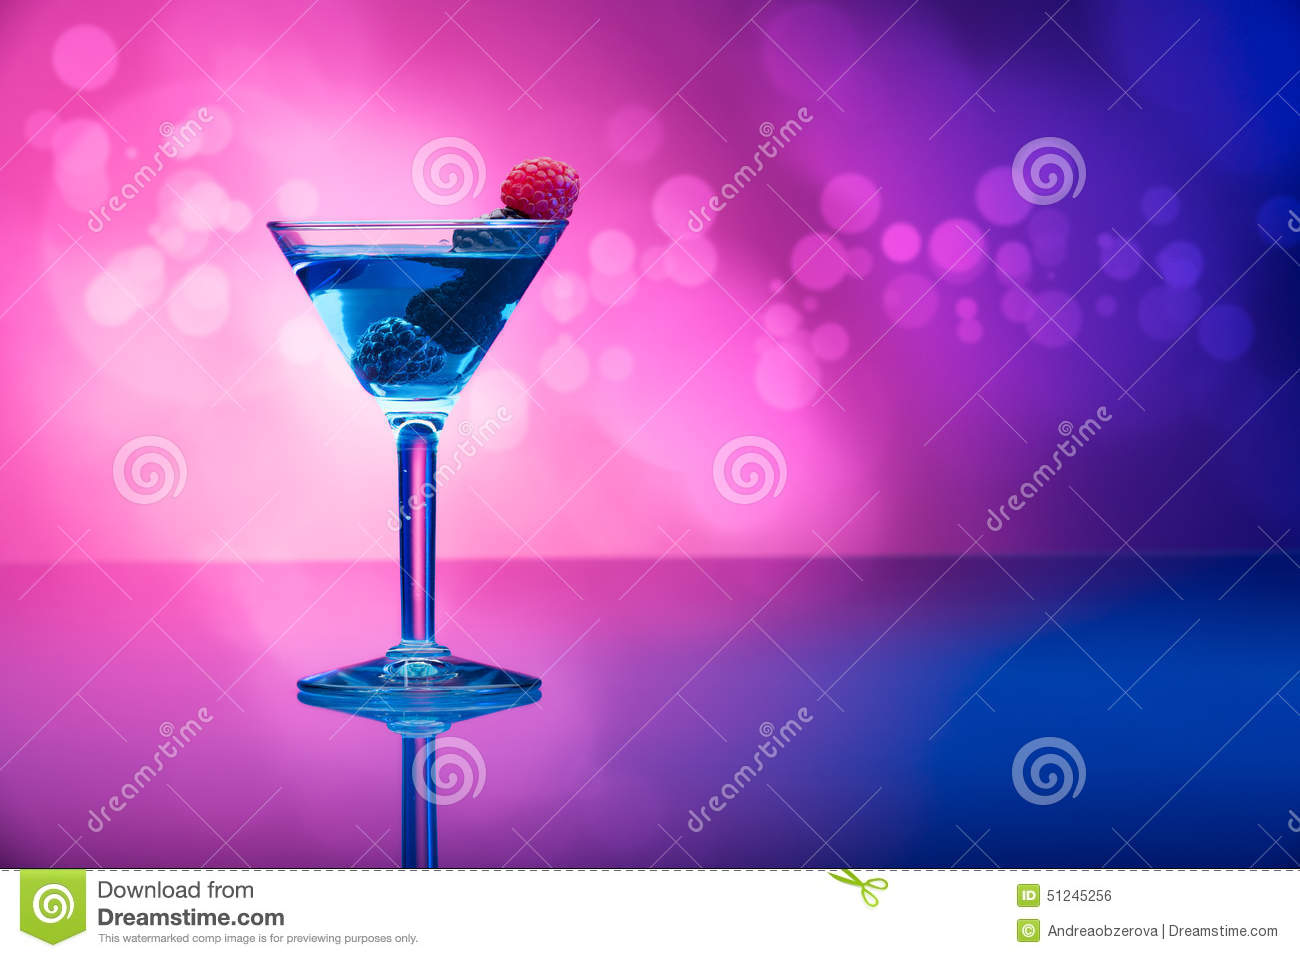 Colourful cocktails garnished with berries, background with light effects